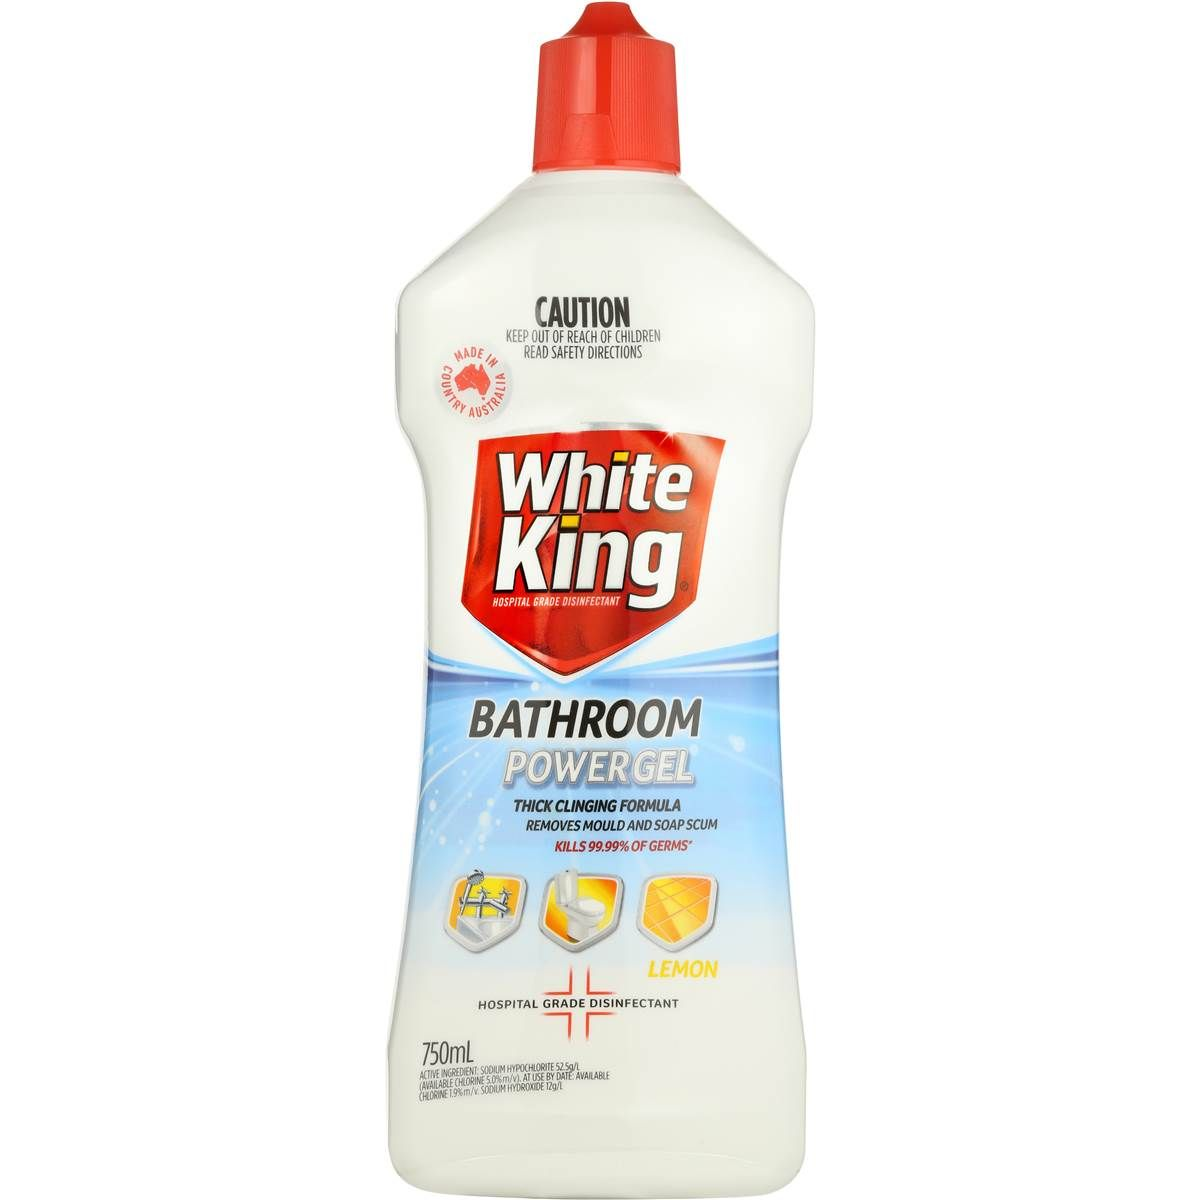 White King Bathroom Power Gel Lemon 750ml White King Lemon